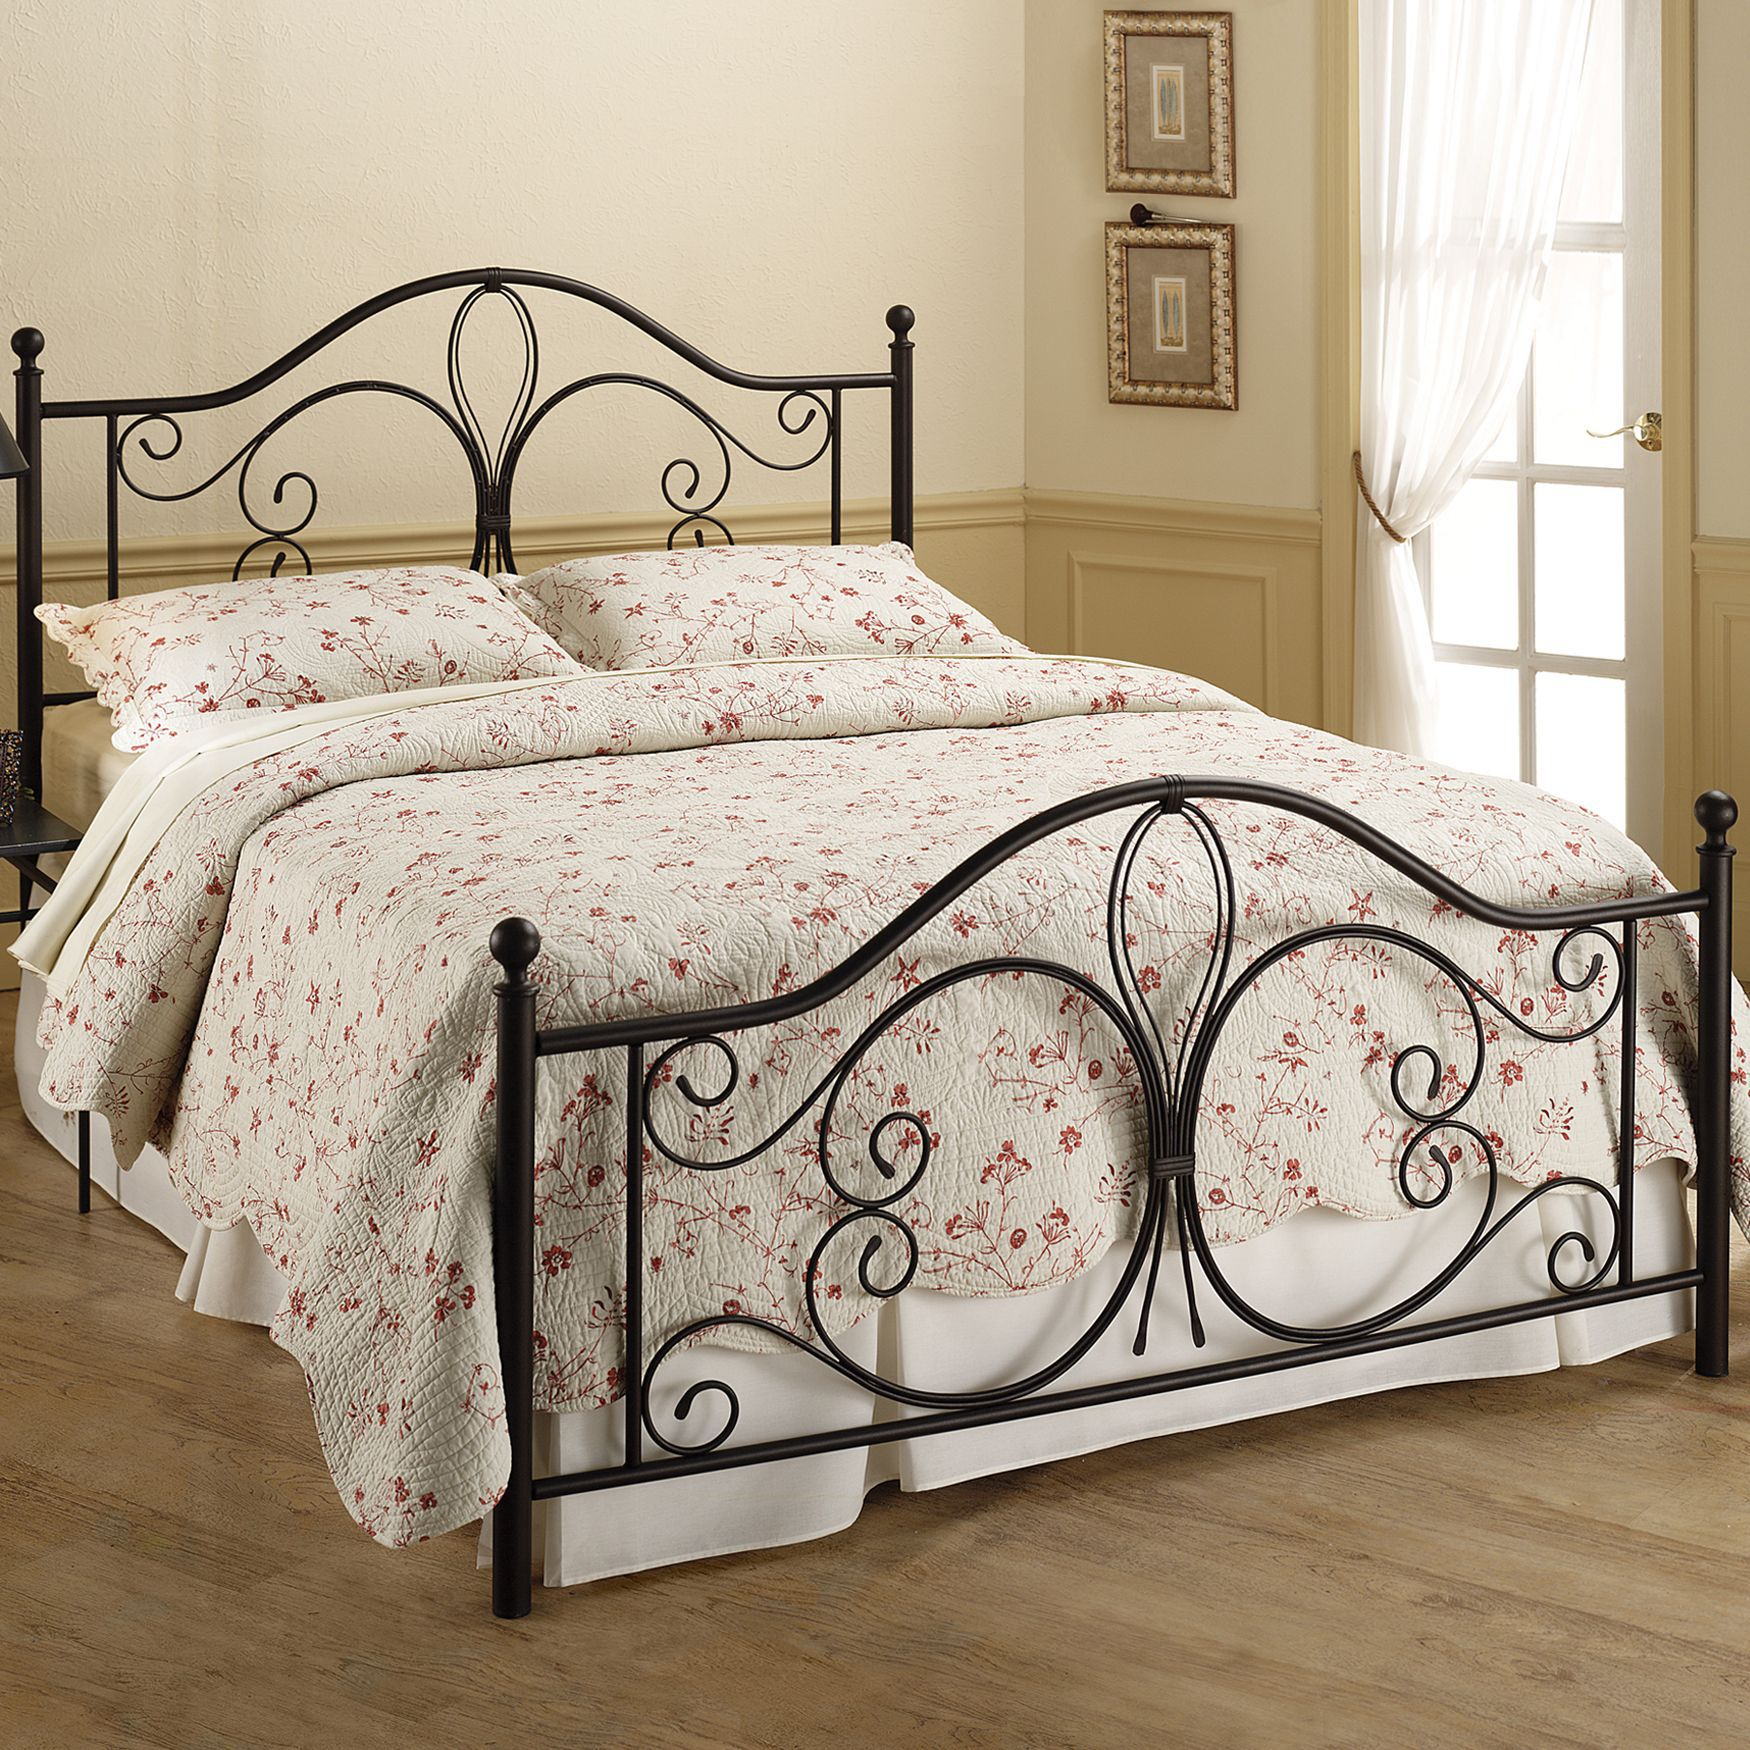 "King Bed Set with Bed Frame, 83½""Lx79½""Wx49½""H, ANTIQUE BROWN"